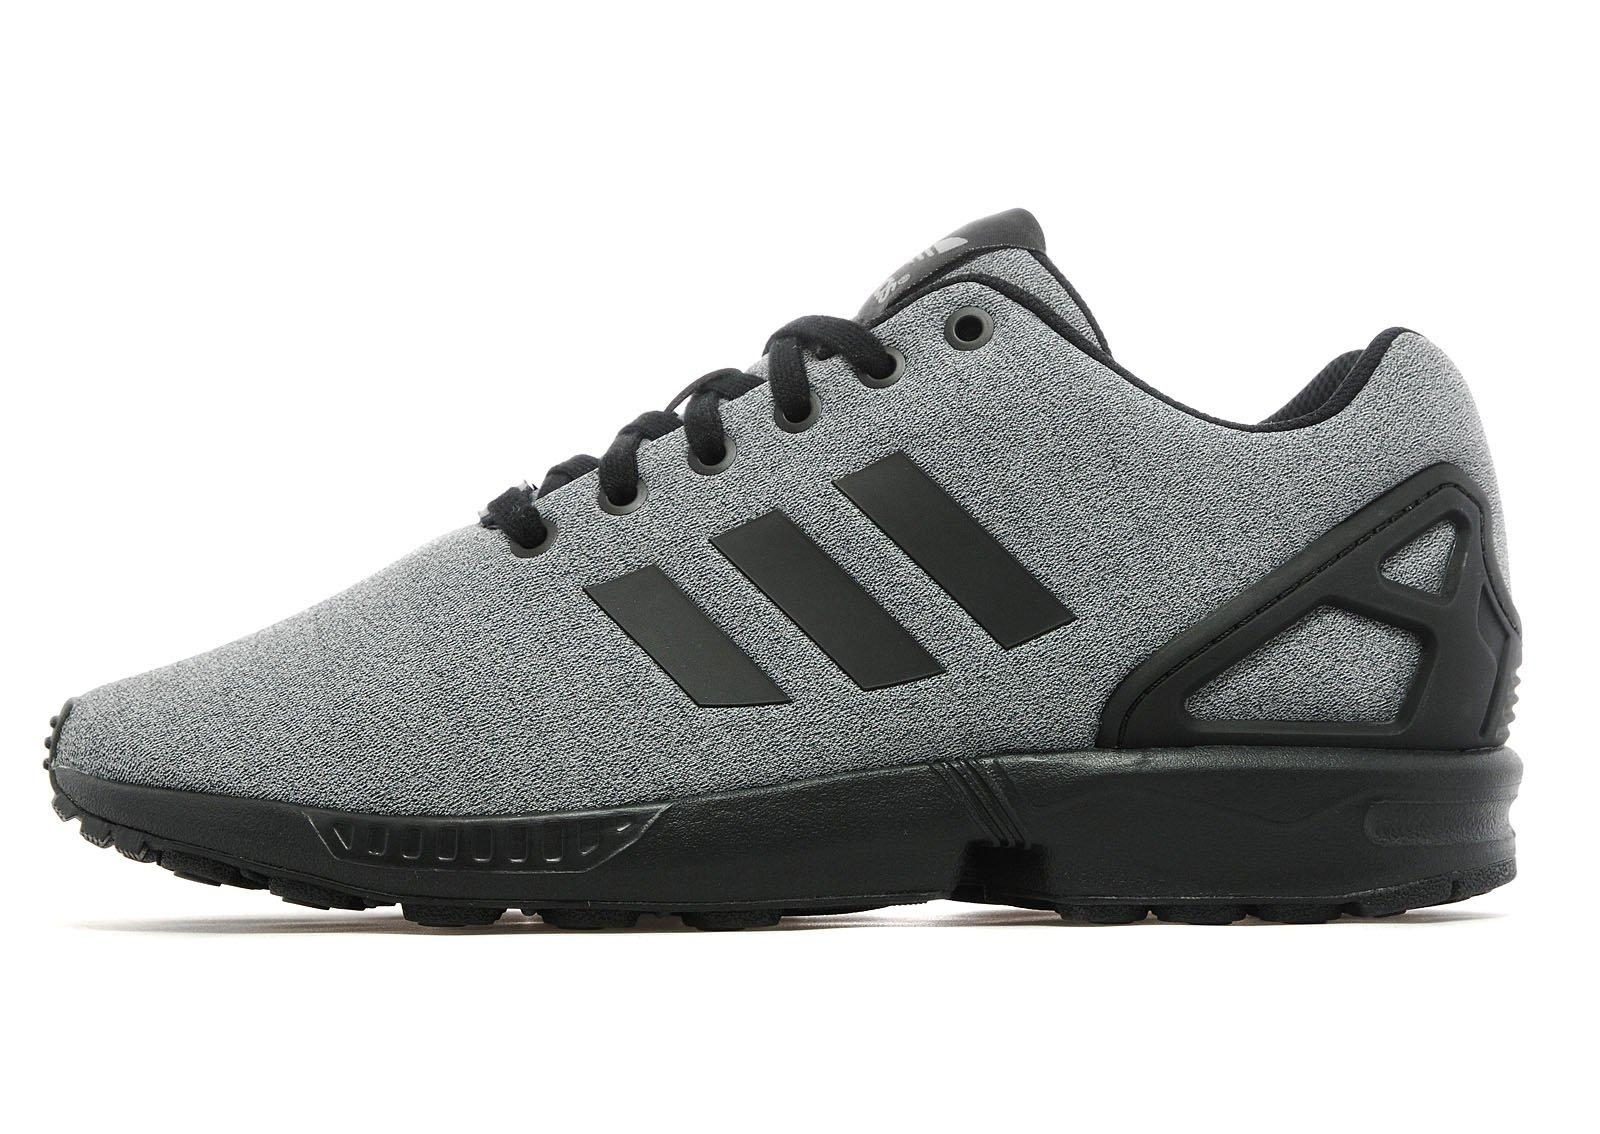 detailed look 83c42 613f7 adidas zx flux jd